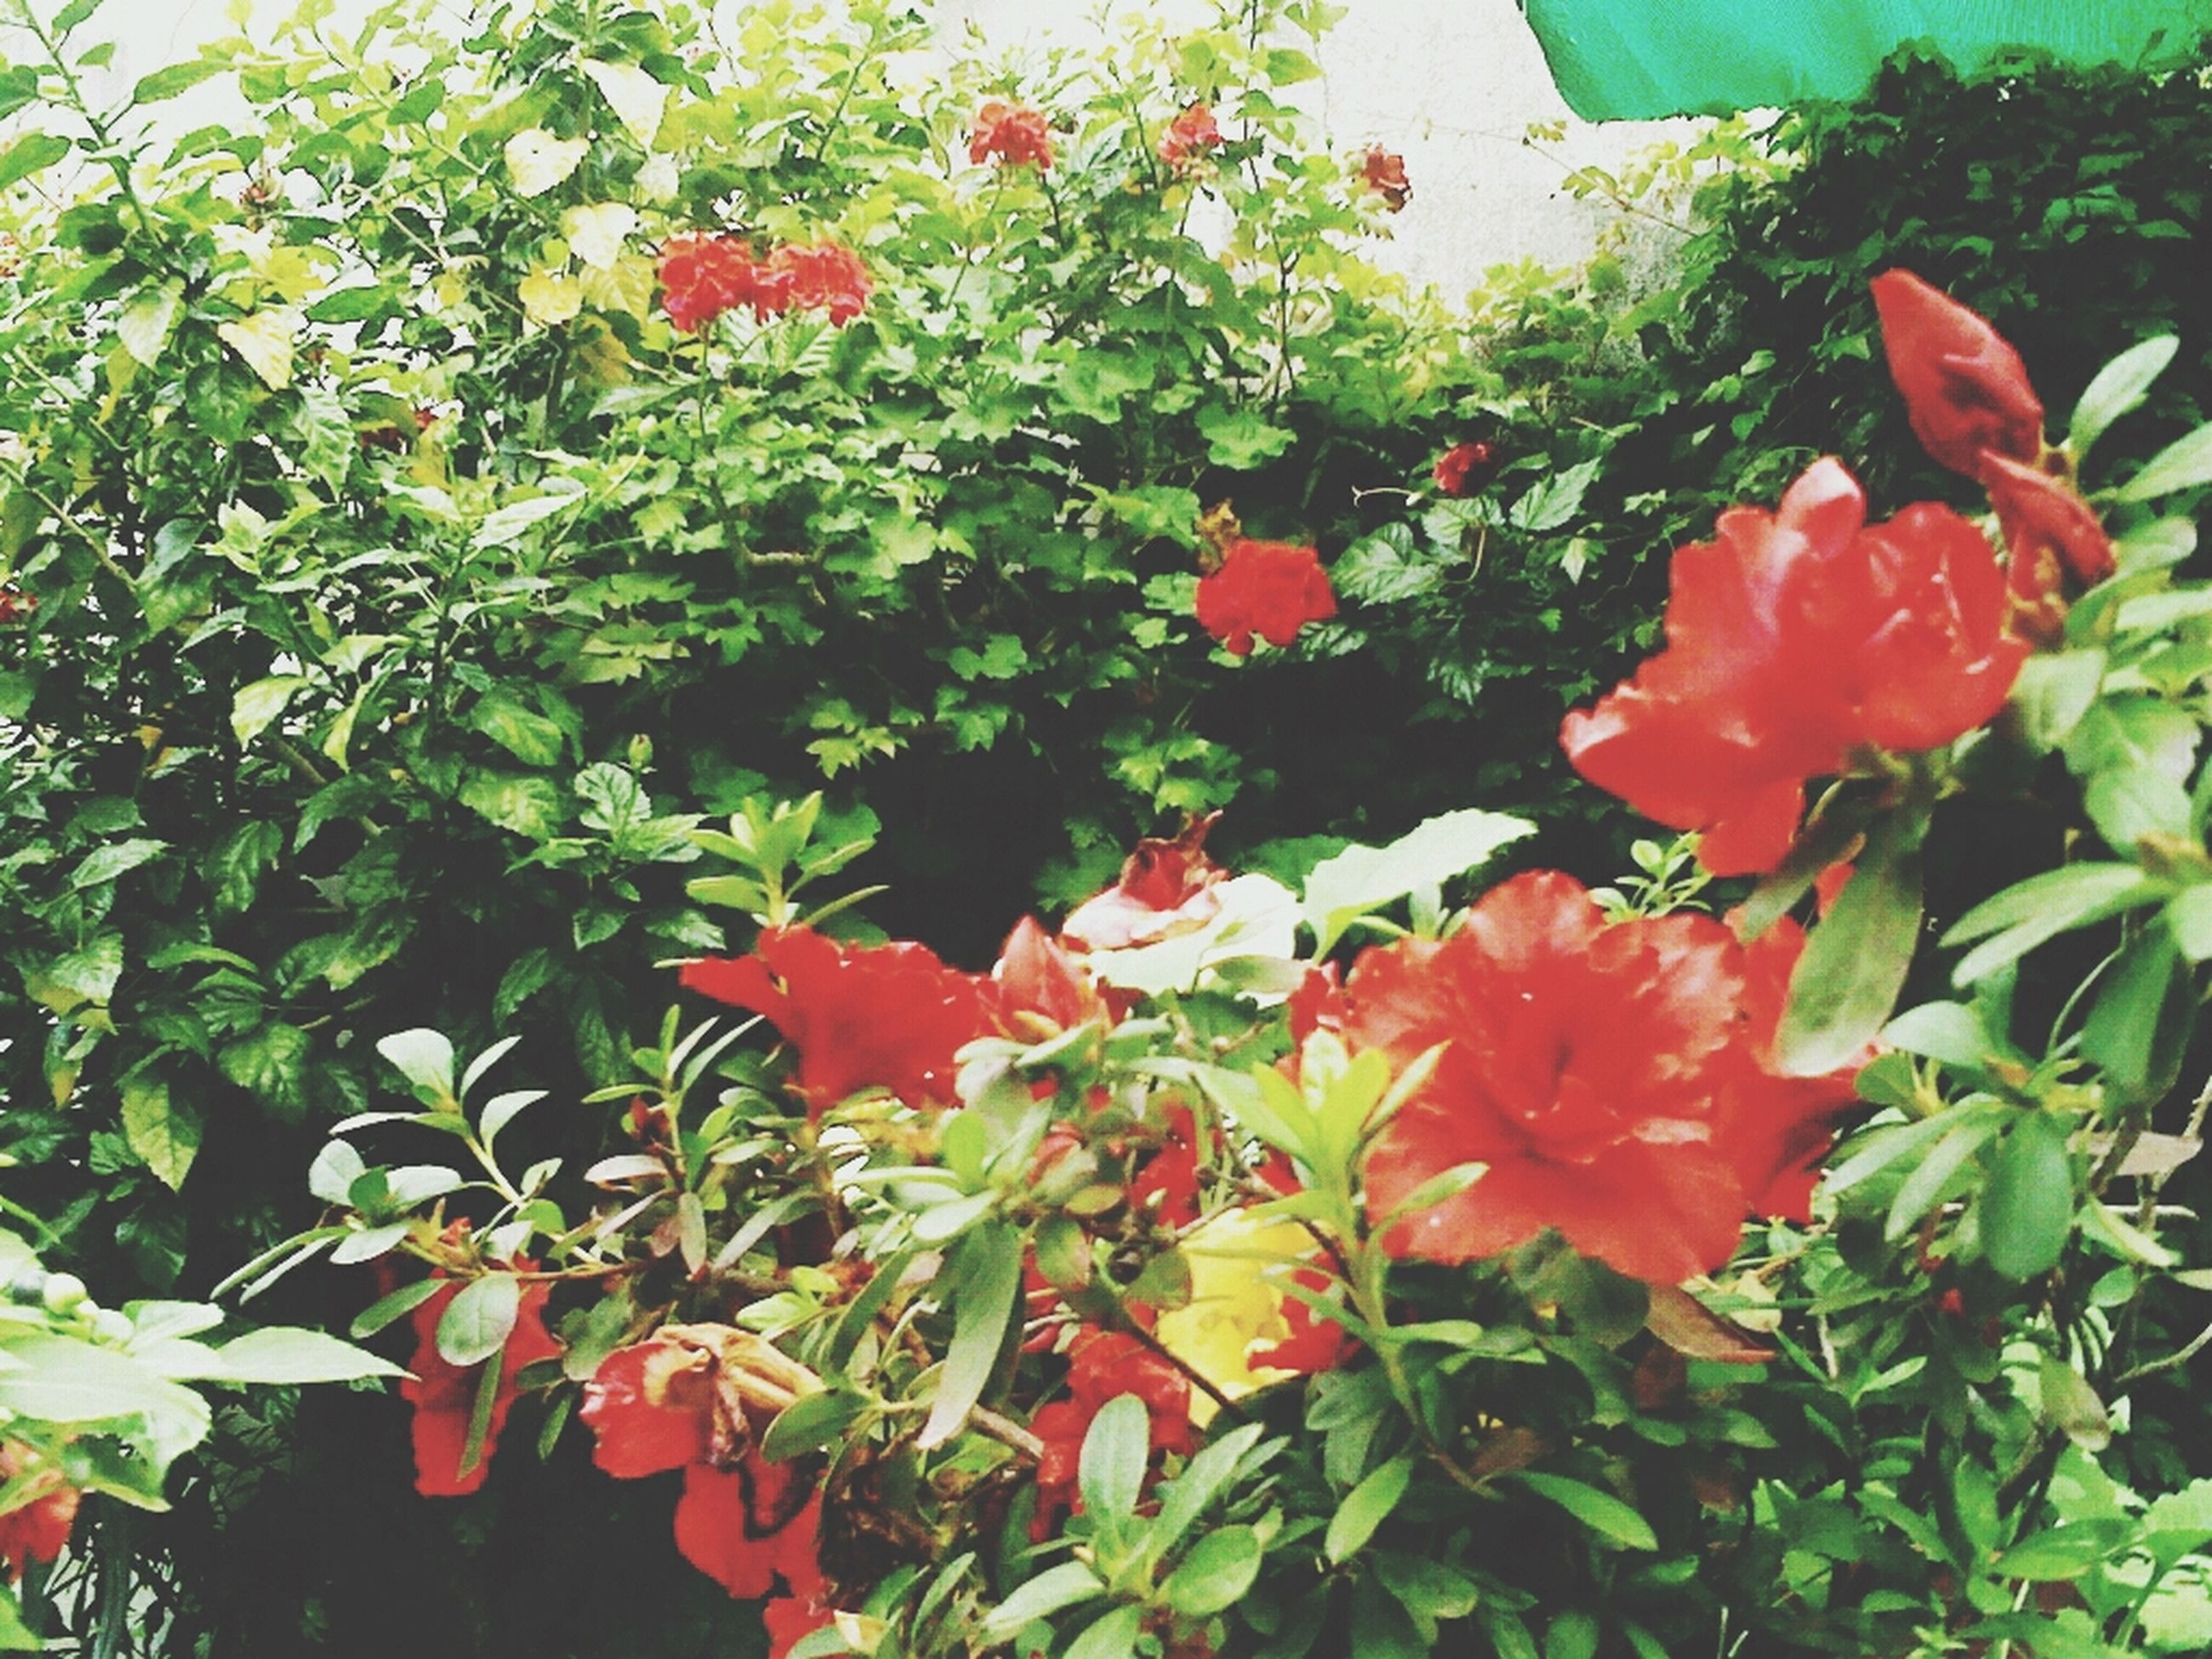 flower, growth, freshness, petal, leaf, plant, fragility, red, beauty in nature, flower head, blooming, nature, green color, in bloom, close-up, day, high angle view, outdoors, no people, growing